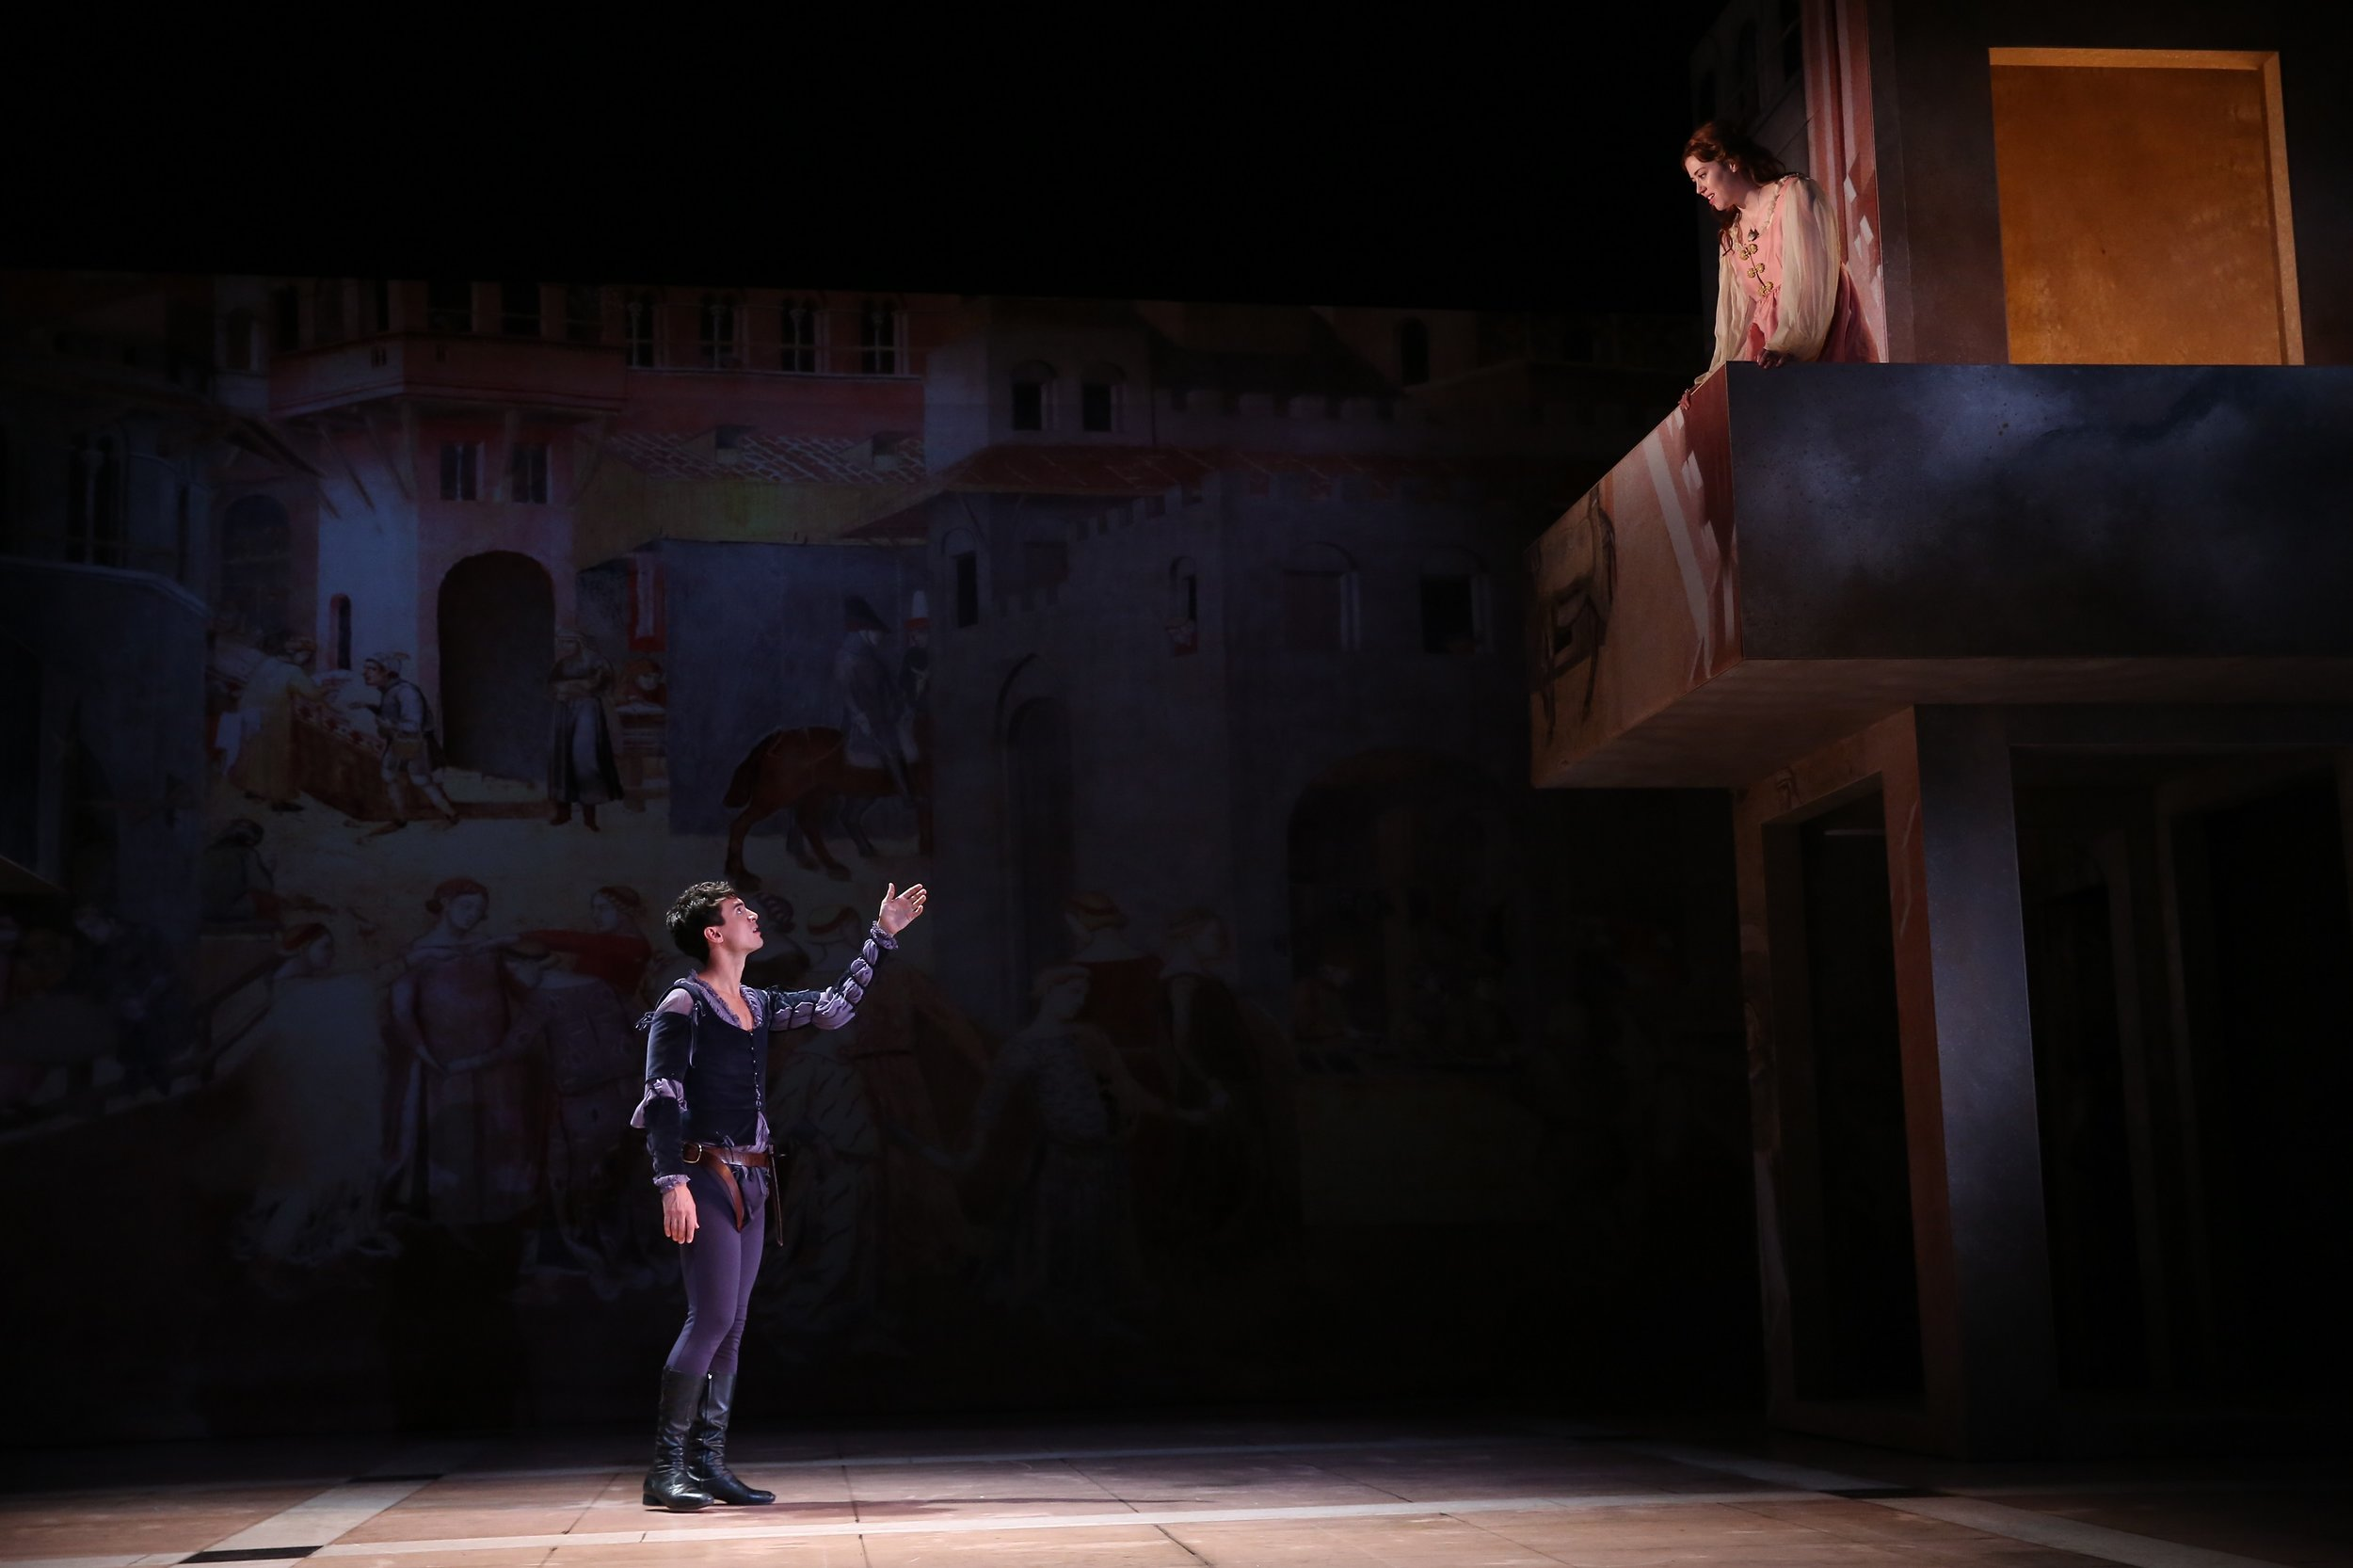 Romeo (James Cusati-Moyer), Juliet (Nicole Rodenburg); photo credits: Carol Rosegg